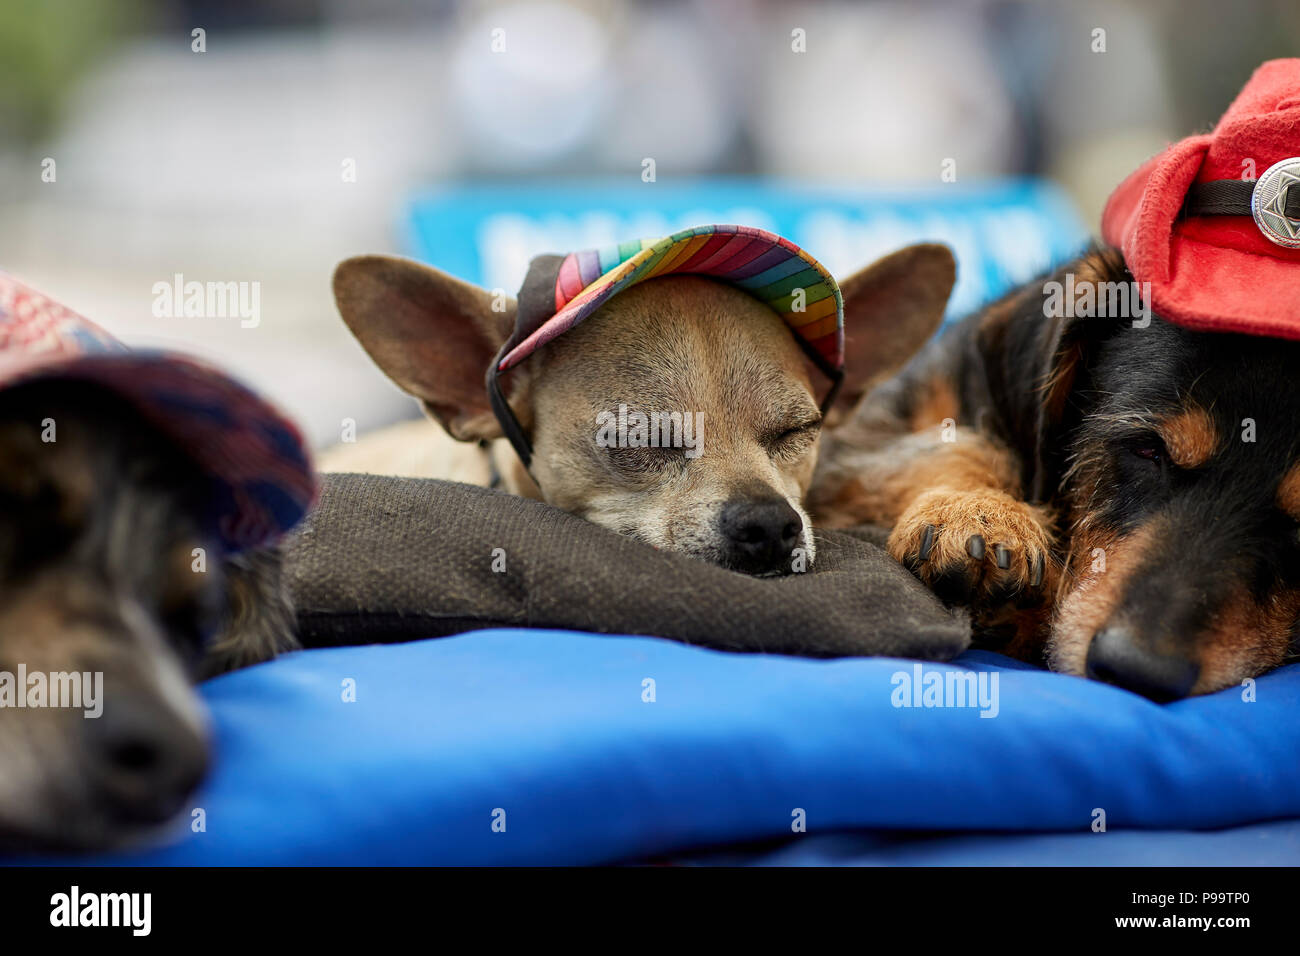 Prescott, Arizona, USA - June 30, 2018: Dogs sleeping with handmade doggie hats at the 4th of July festival in downtown Prescott - Stock Image